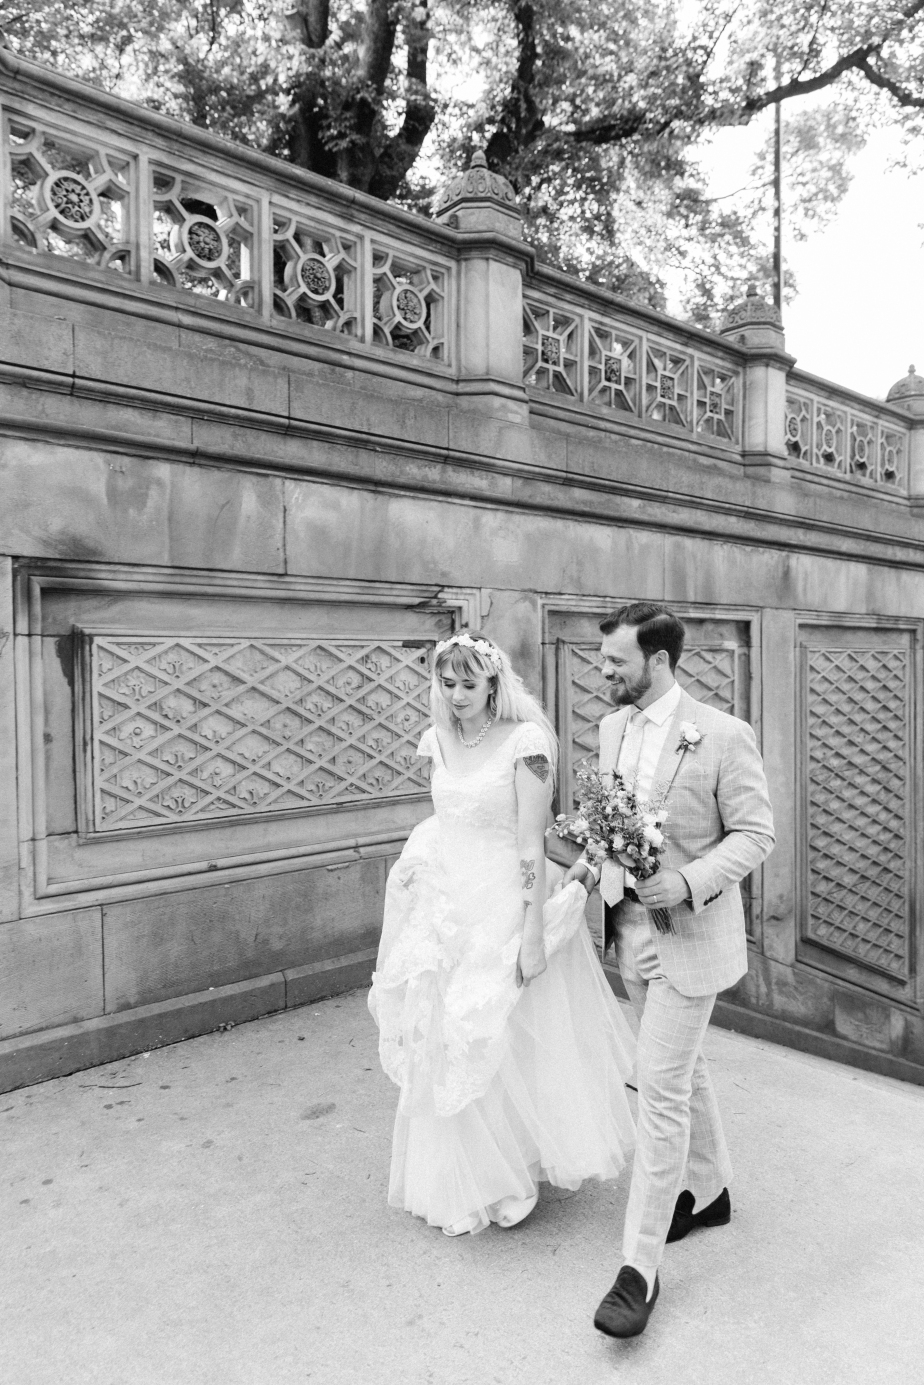 Central-park-wedding_AS-340